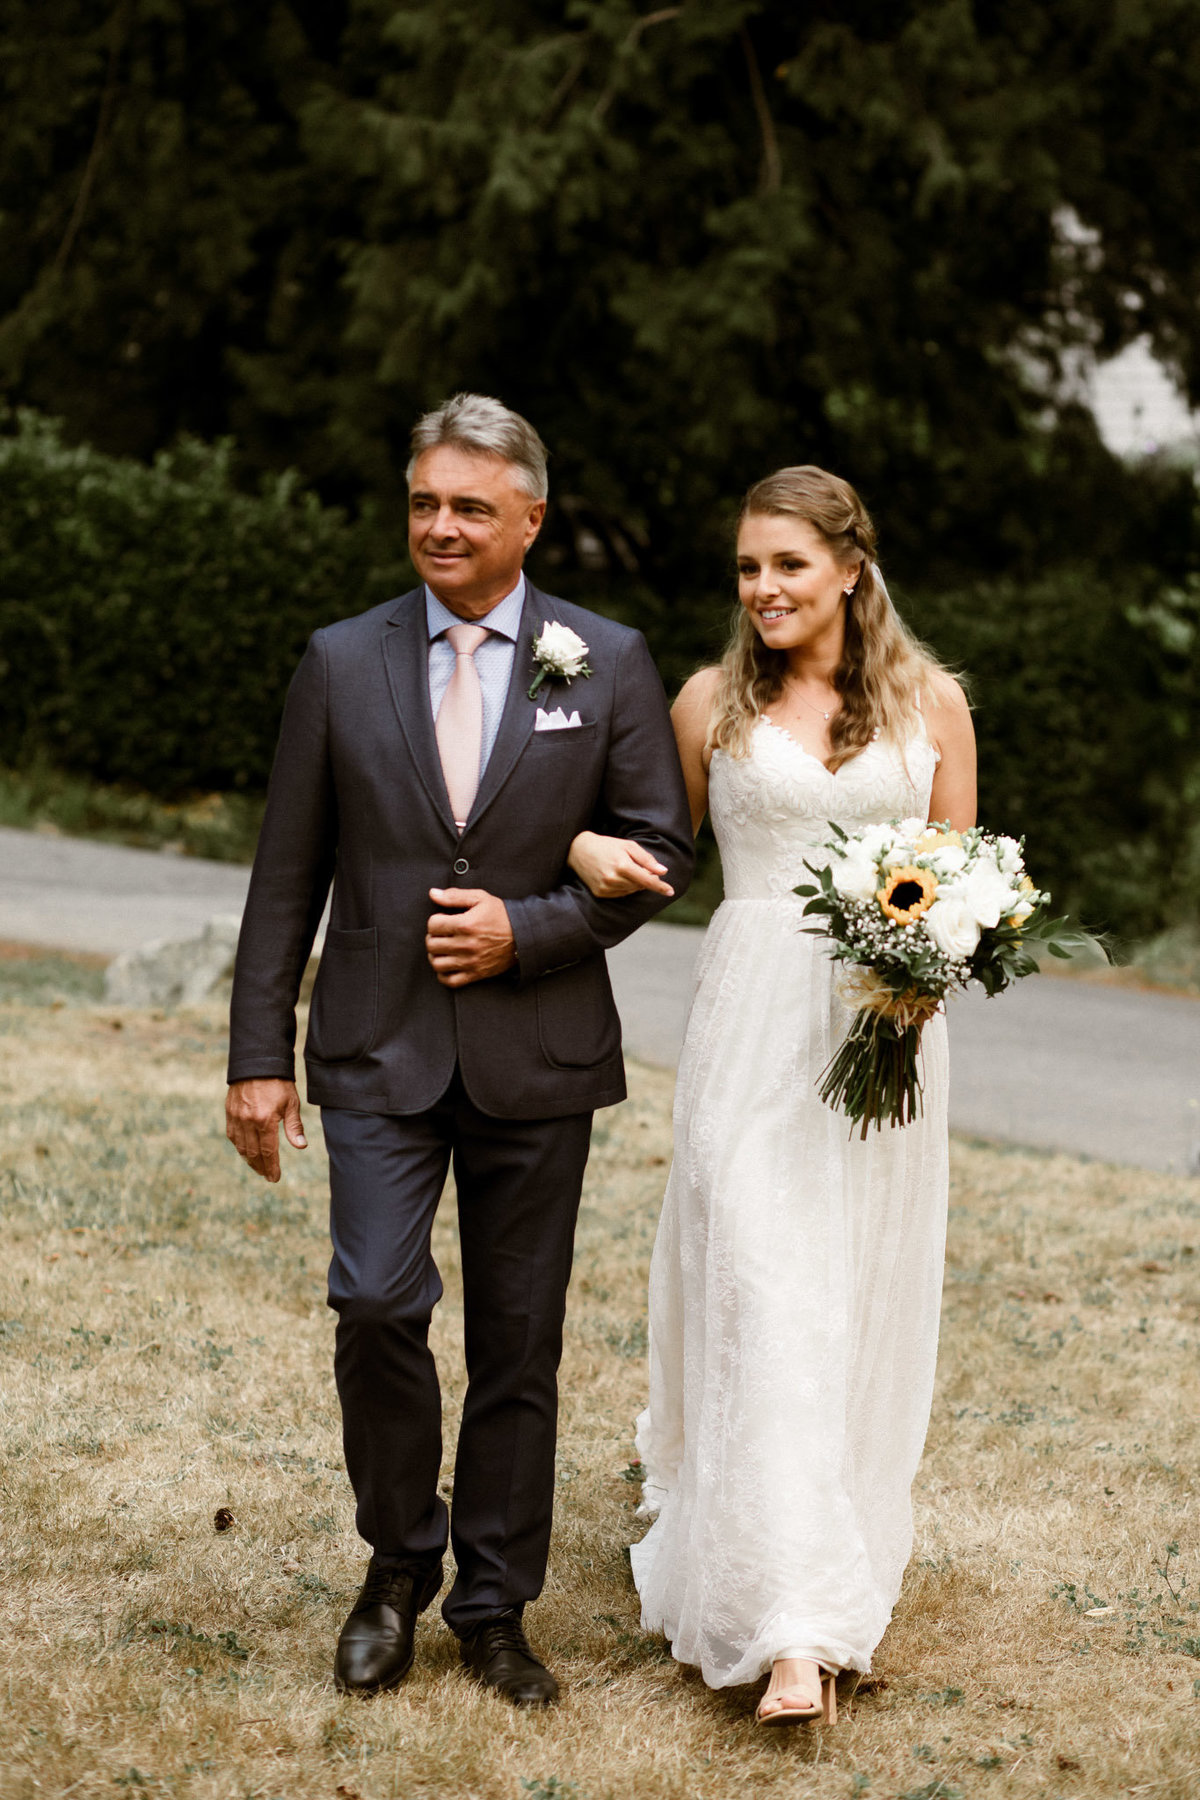 danika lee photography_kelowna vancouver okanagan summerland lake country wedding and elopement photographer candid film documentary colourful candid romantic dark and moody-627